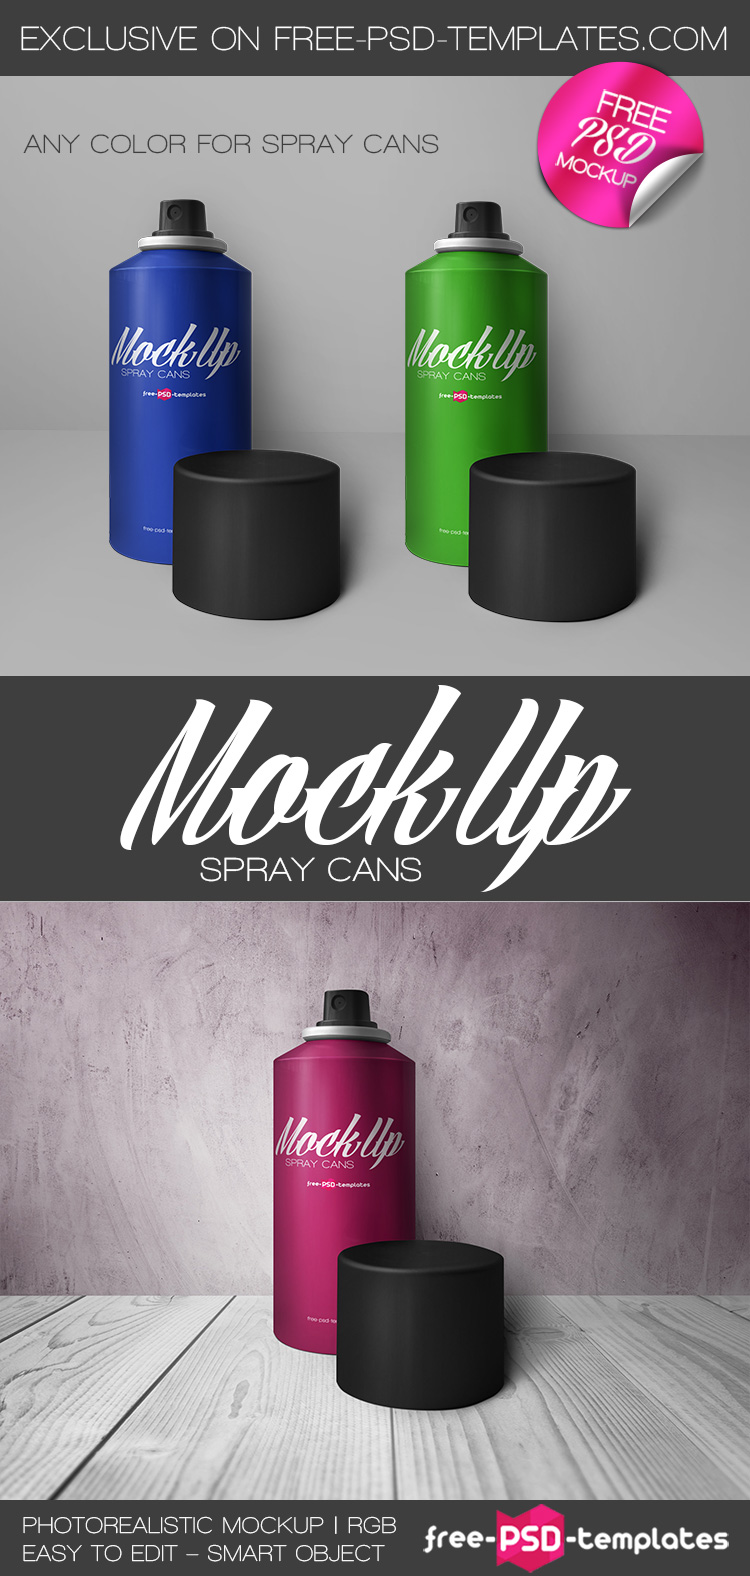 Free Spray Cans Mock-up in PSD | Free PSD Templates